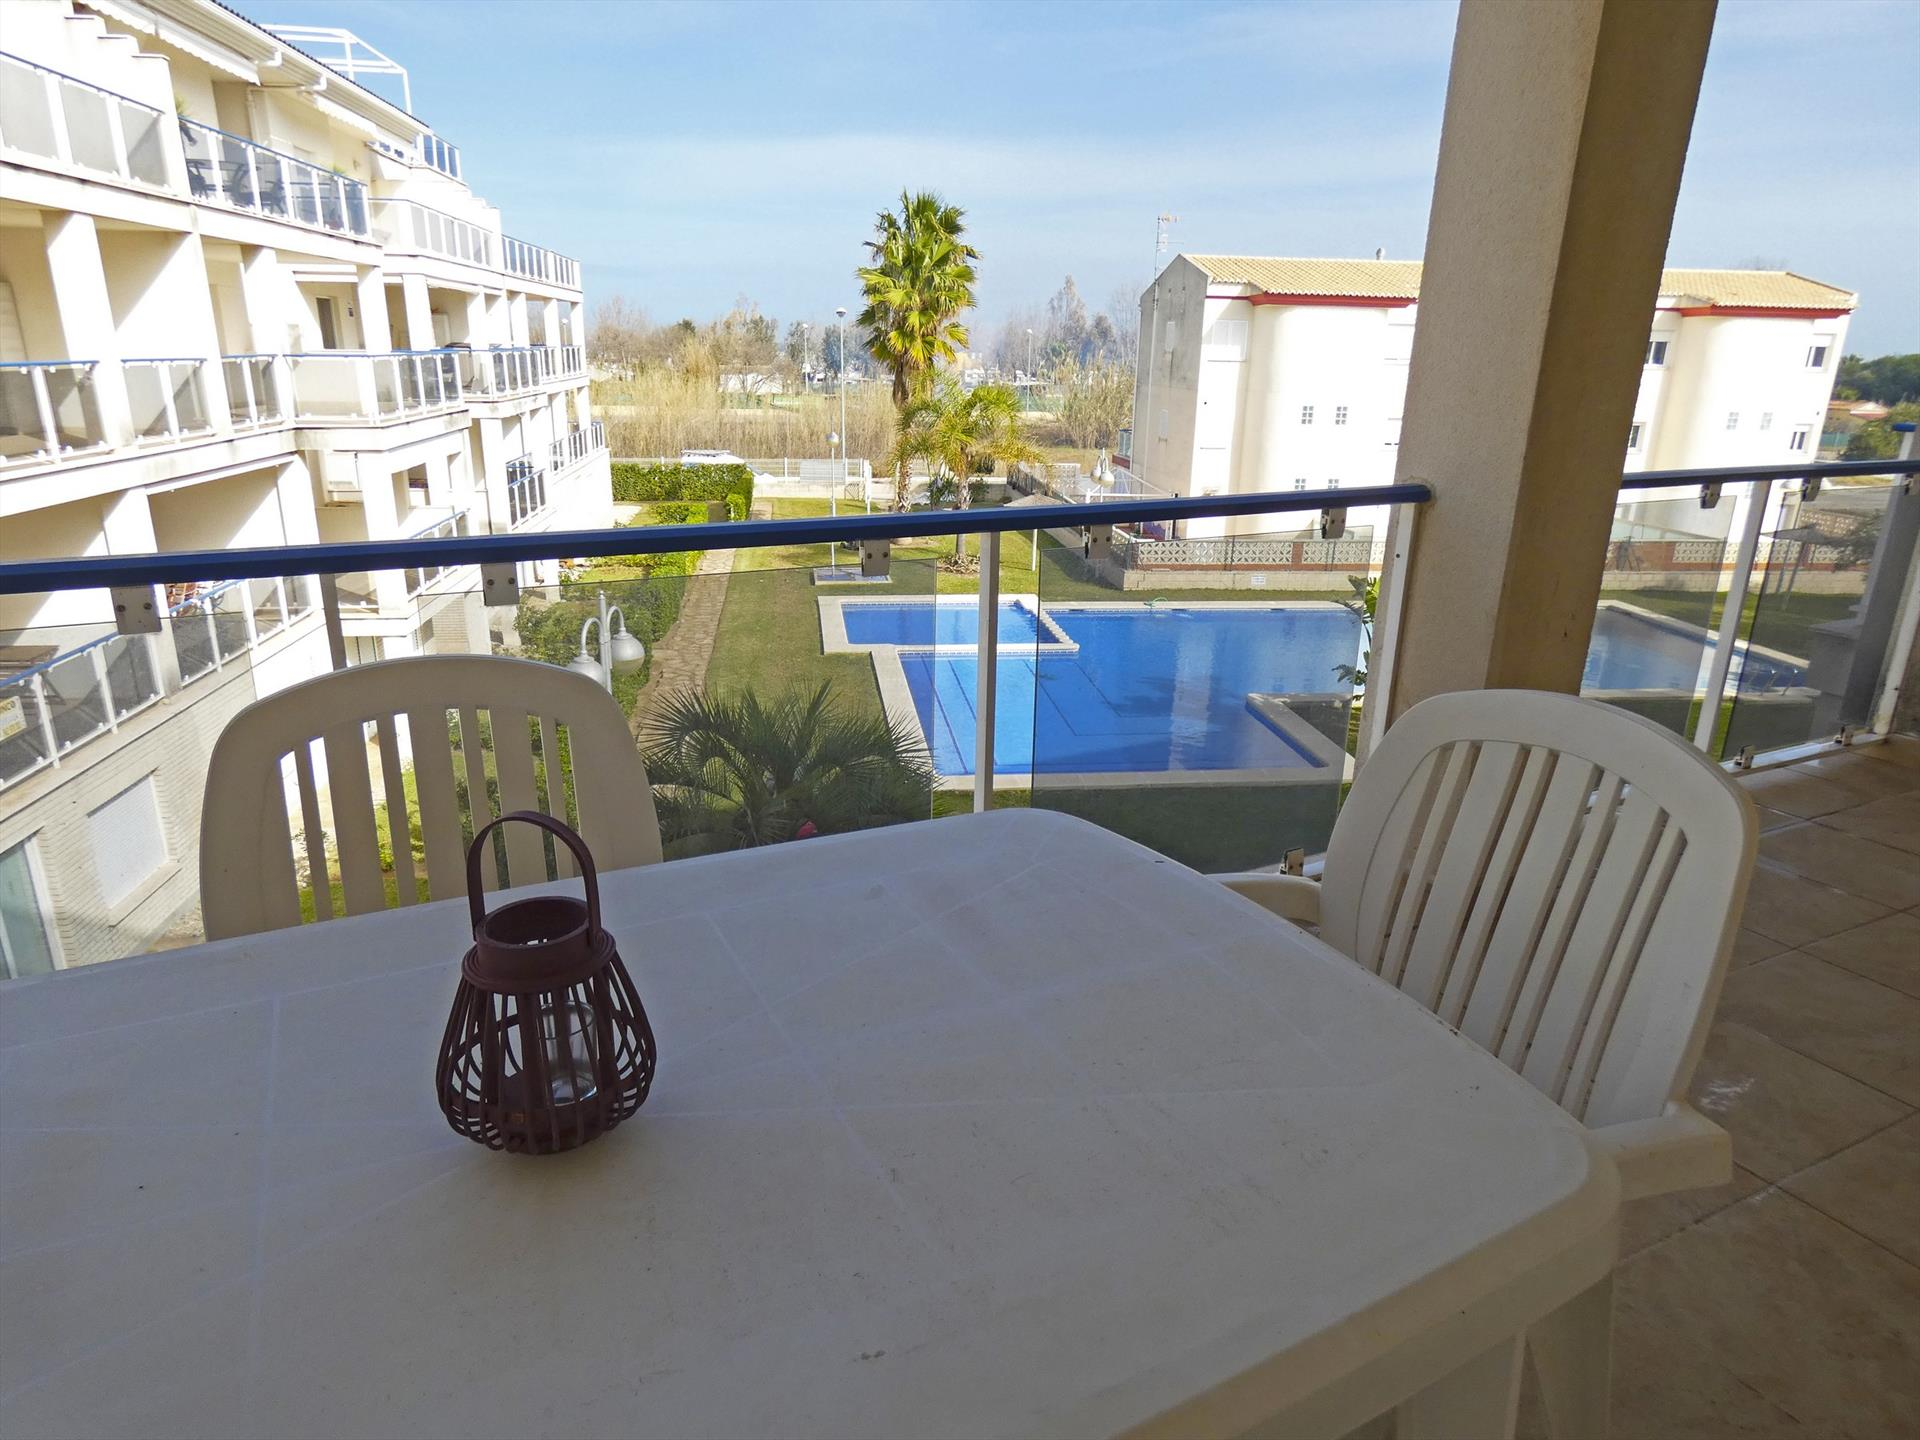 Vora Golf II Playa Rabdells AP437, Wonderful and cheerful apartment  with communal pool in Oliva, on the Costa Blanca, Spain for 4 persons.....